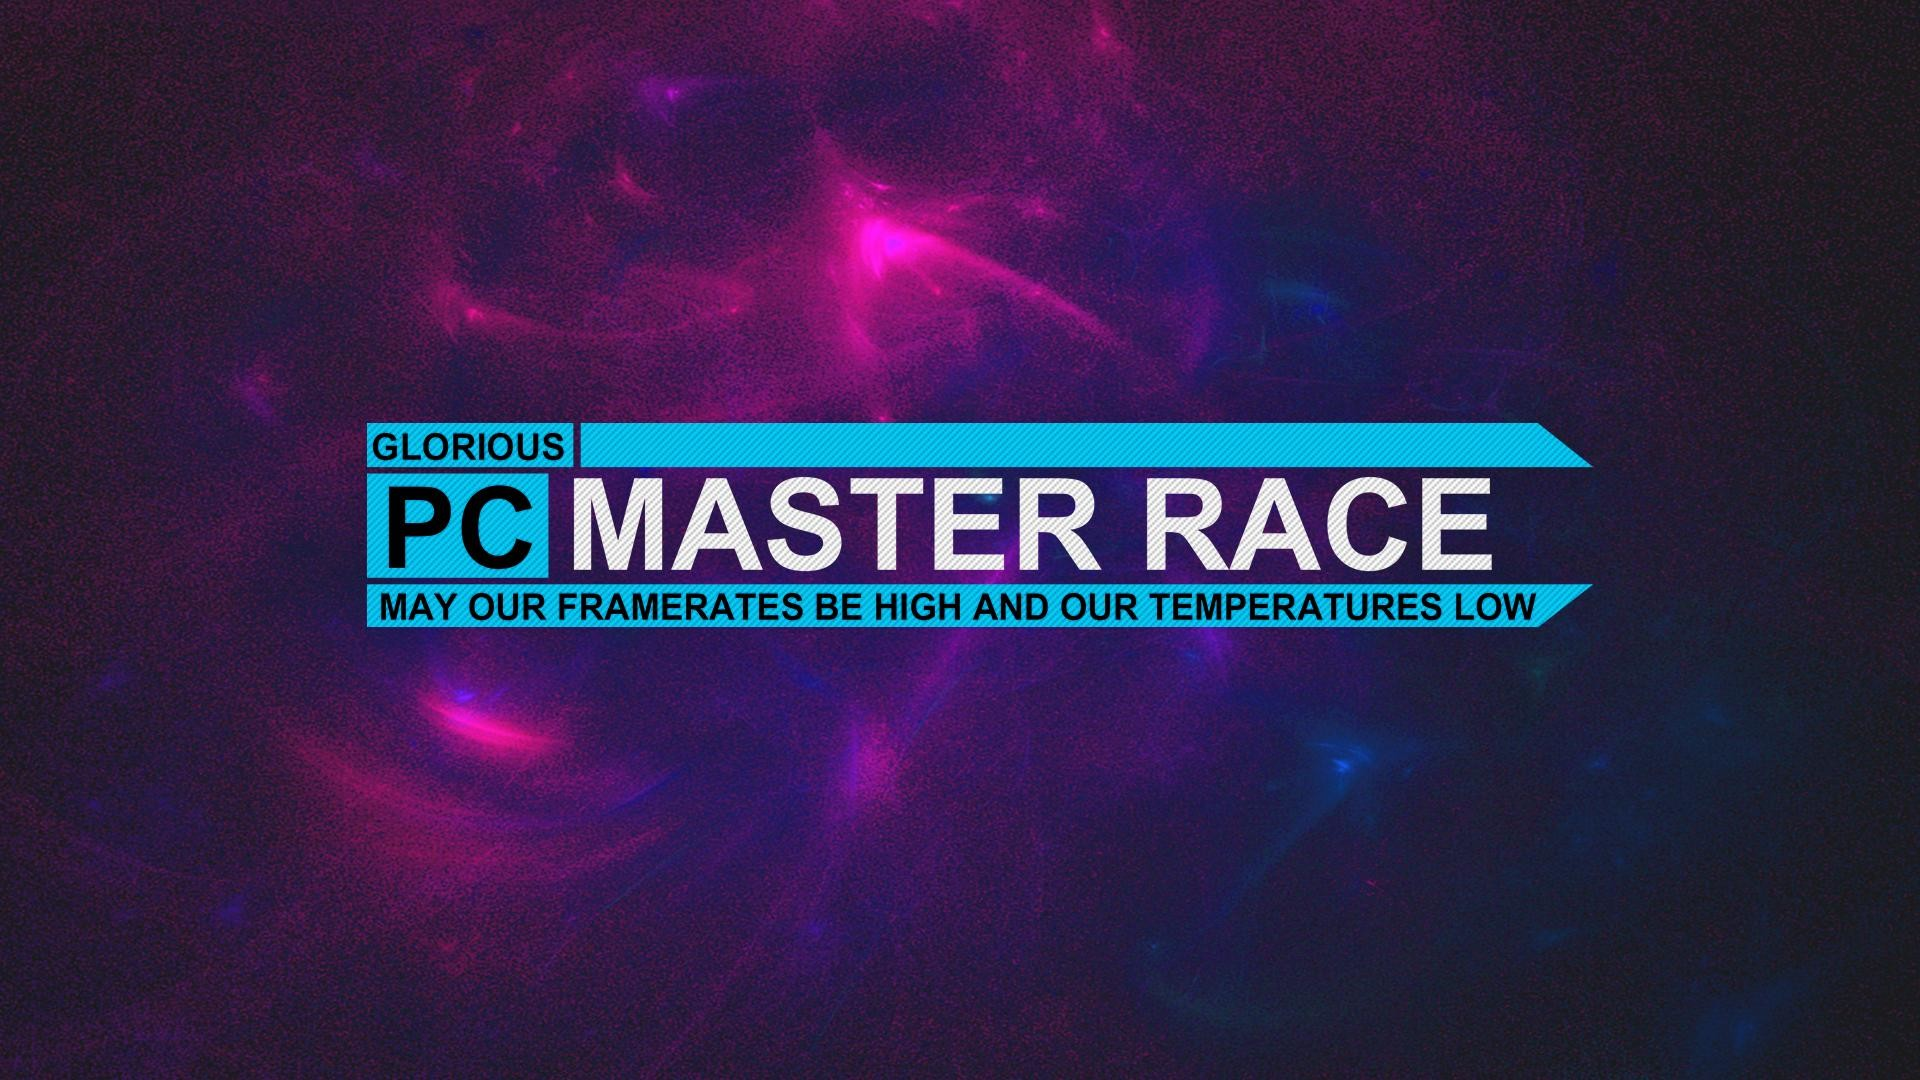 Pc Master Race Hd , HD Wallpaper & Backgrounds